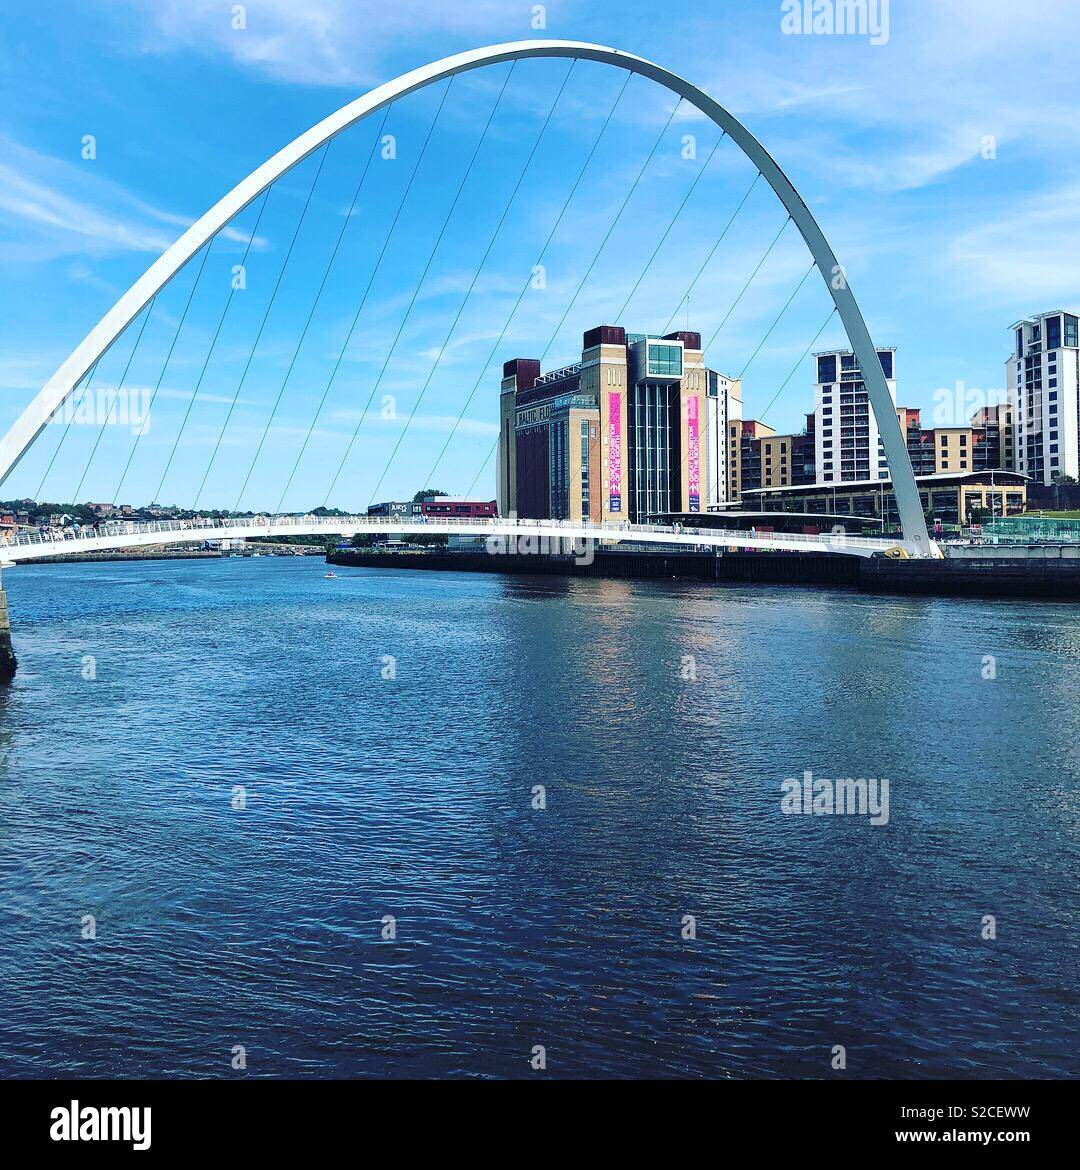 Newcastle millennium bridge - Stock Image